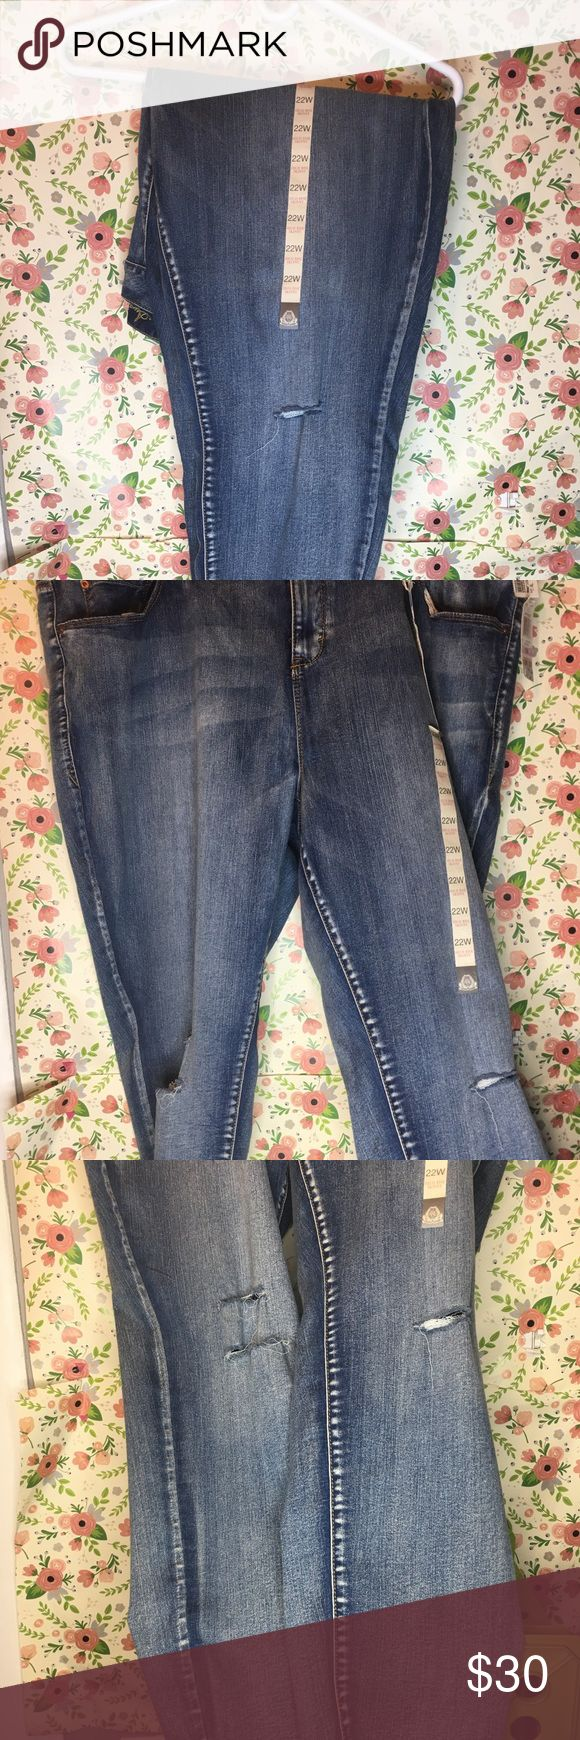 American Rag Jeans American Rag brand New with tags distressed jeans... in great condition American Rag Jeans